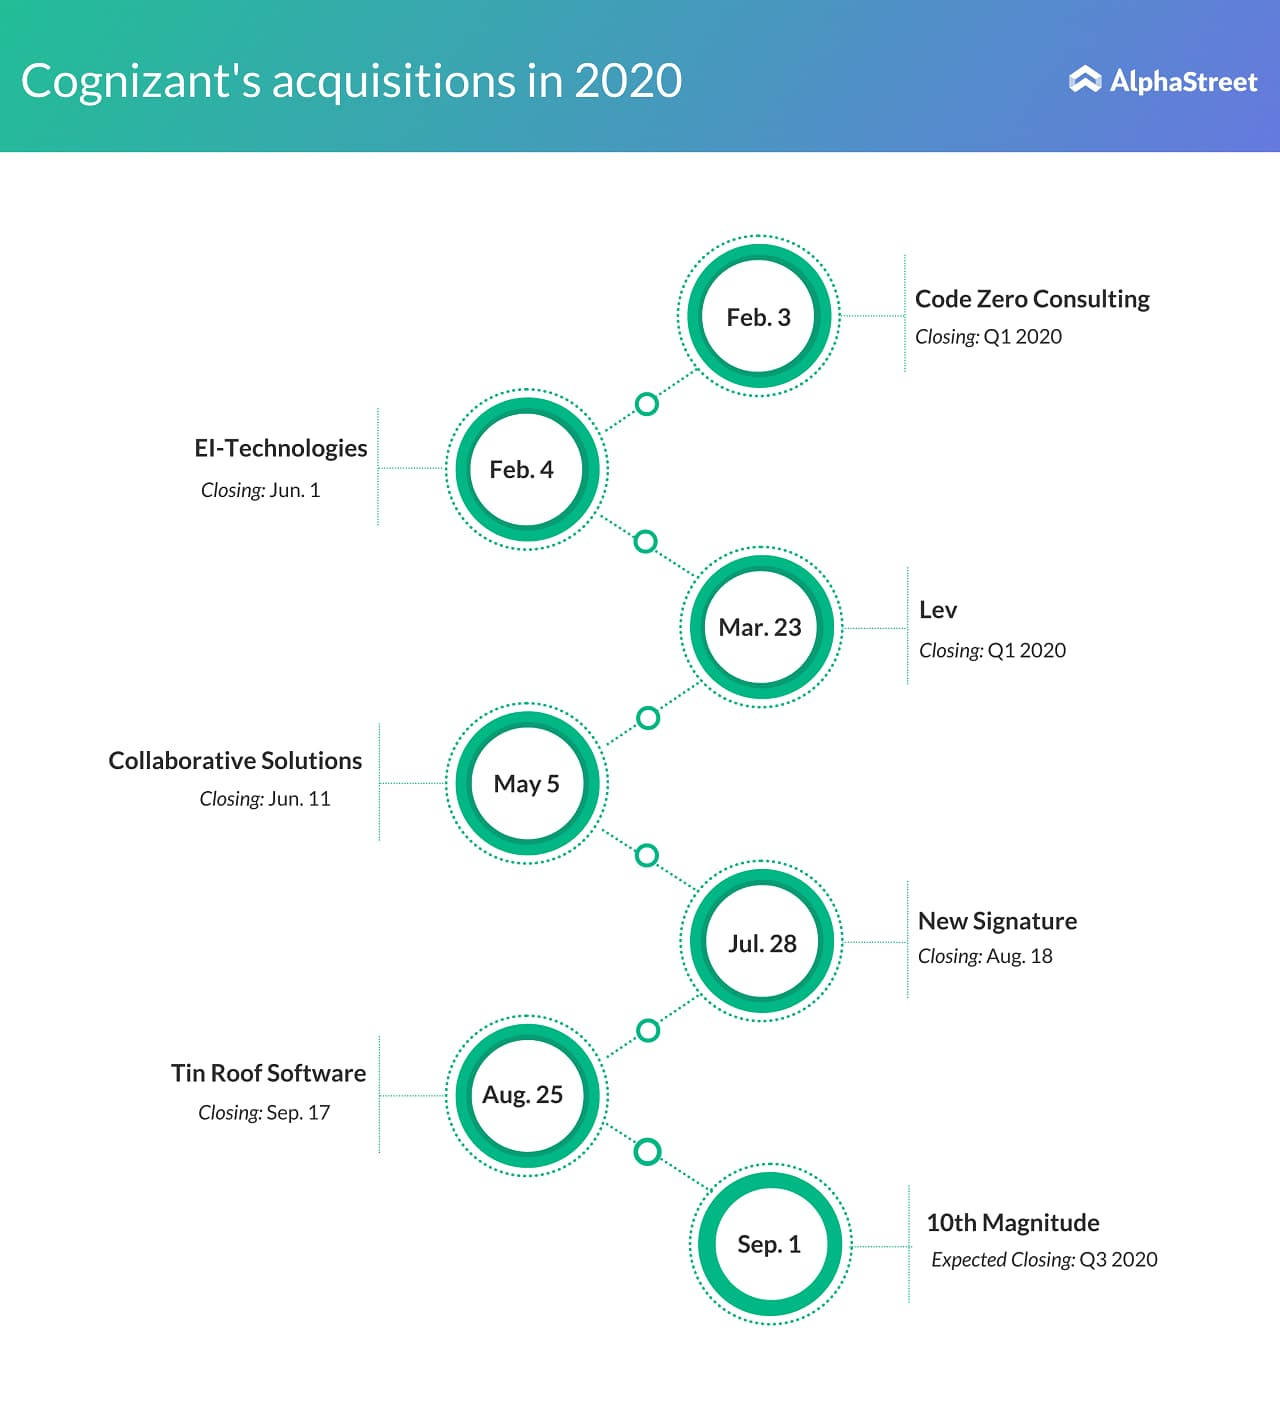 Cognizant Technology Solutions (CTSH) Acquisitions in 2020